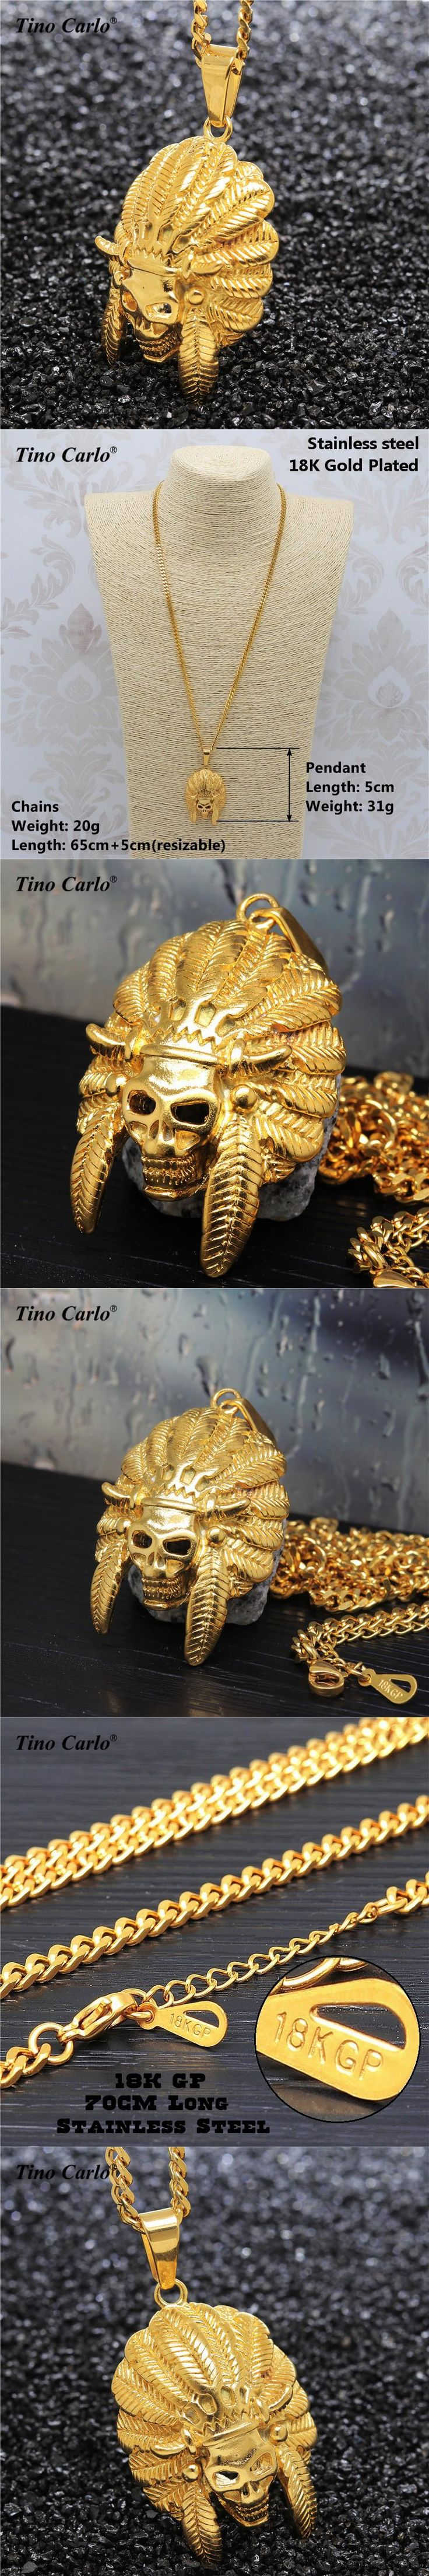 Tribal Chief Statement Necklace Satan Indian Chief Skull Hip hop Jewelry Titanium Steel Golden Men's Unique Necklace 70CM JF1258